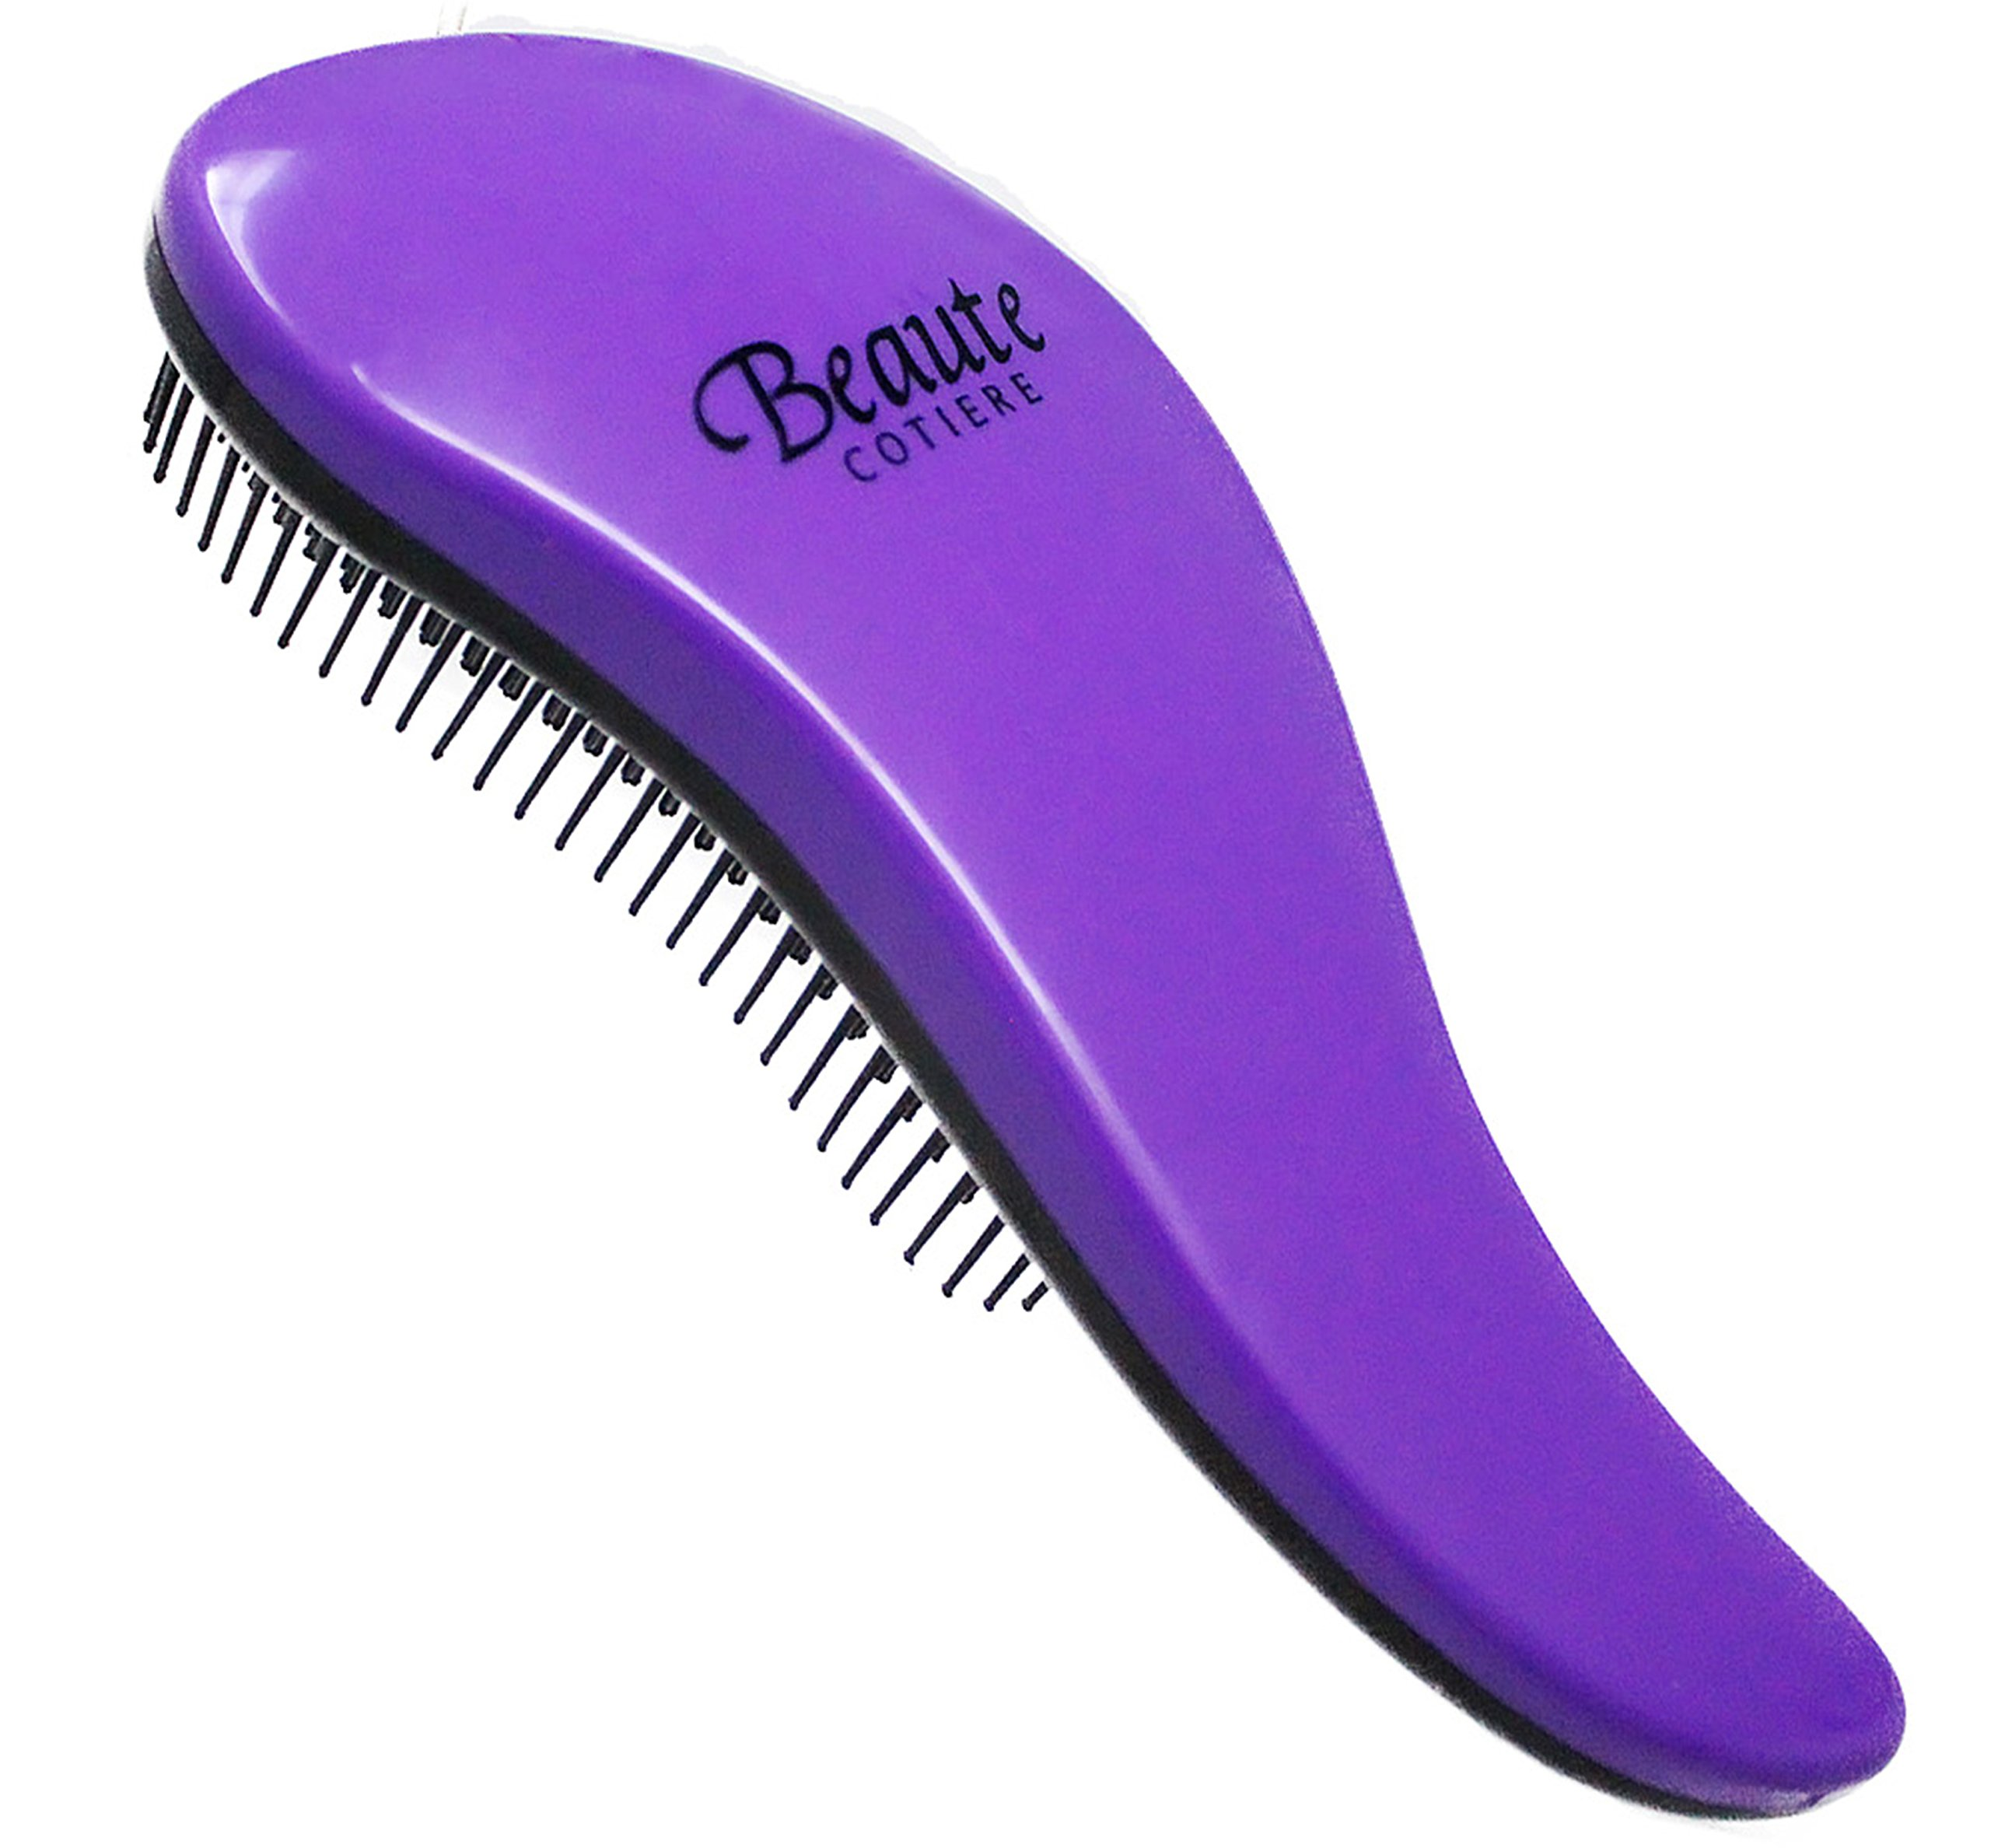 Detangler |Beaute Cotiere Detangling Hair Brush| Wet or Dry Hair - Removes Tangles - For Adults and Kids (Purple)